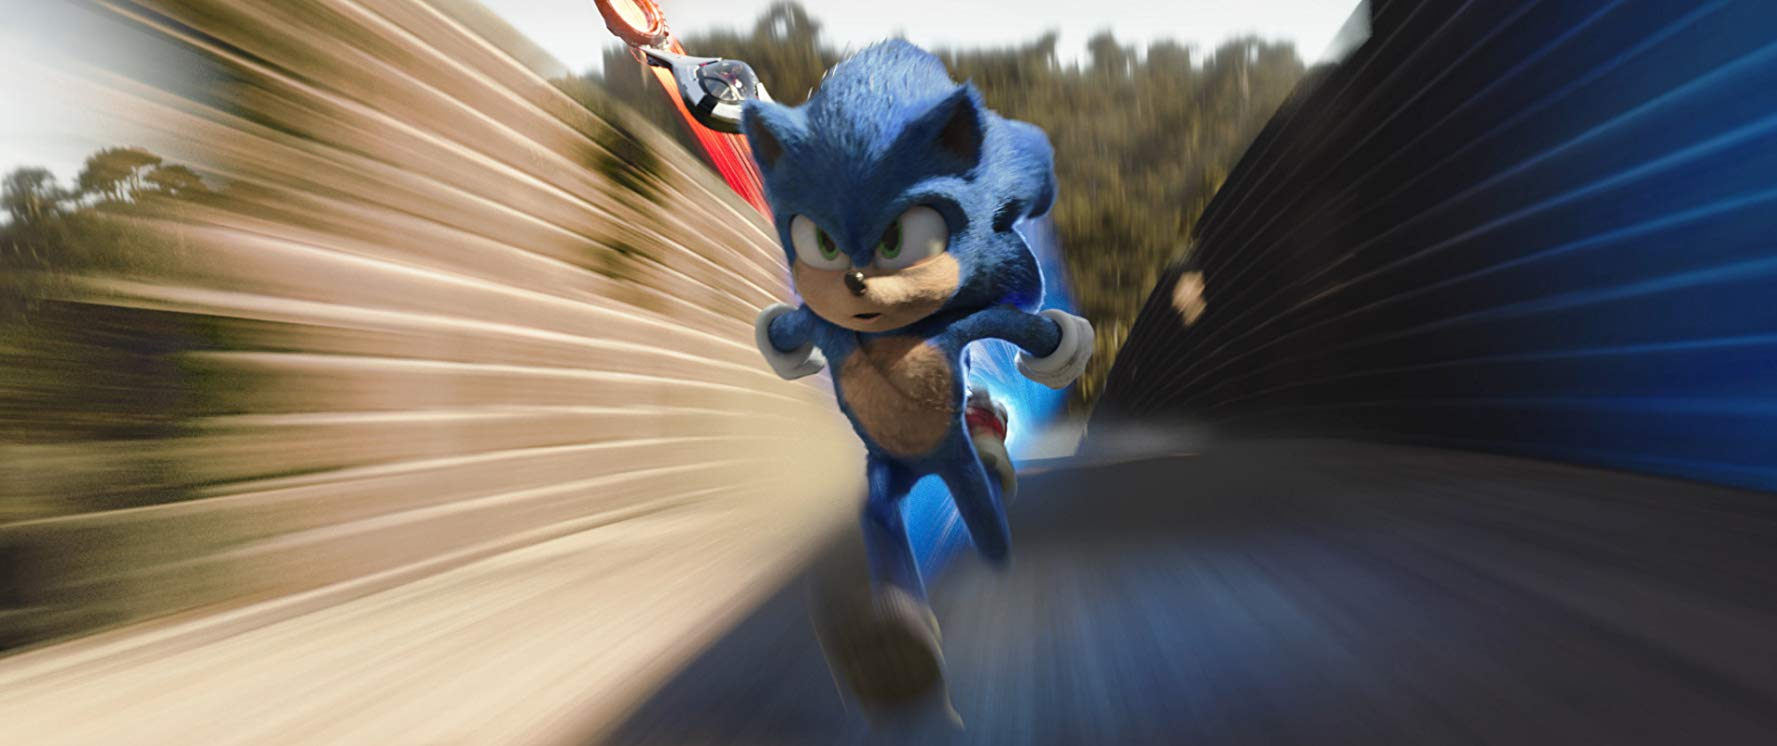 What Is Sonic The Hedgehog Really About?